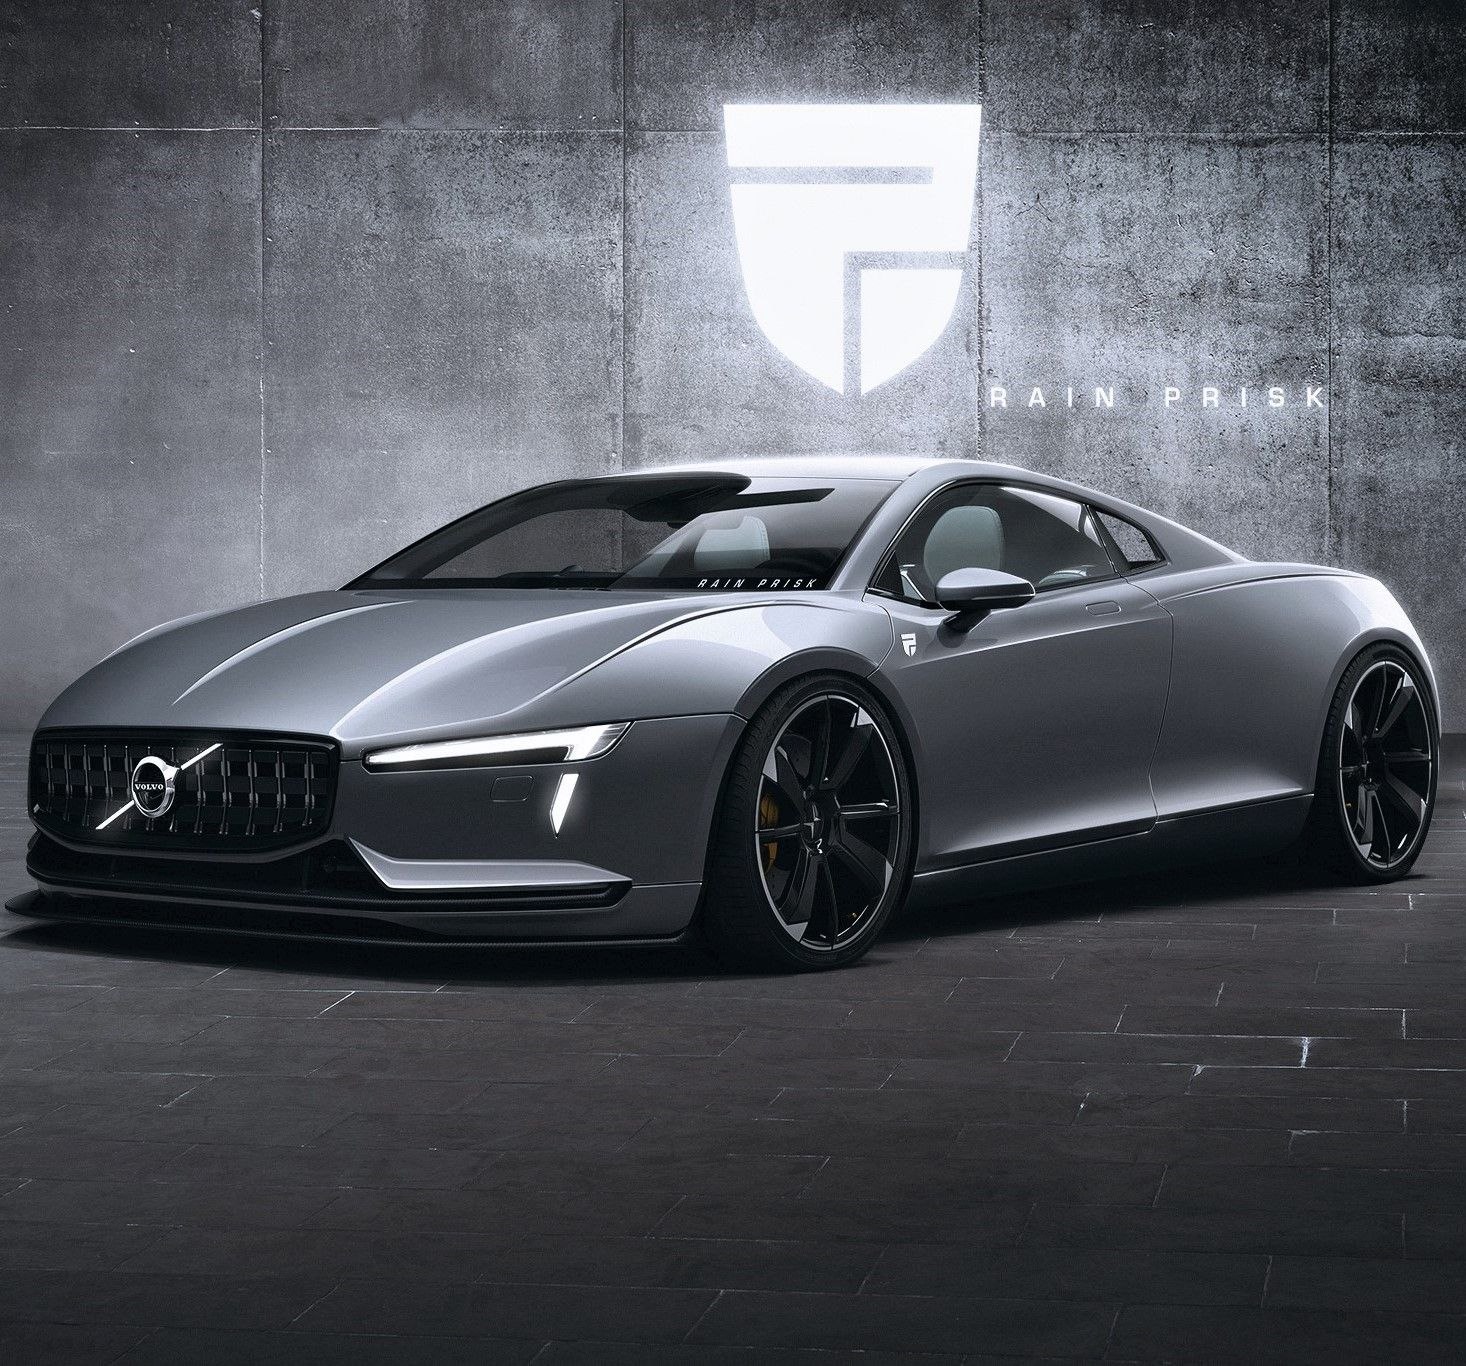 Volvo Electric Supercar By Rain Prisk - The MAN